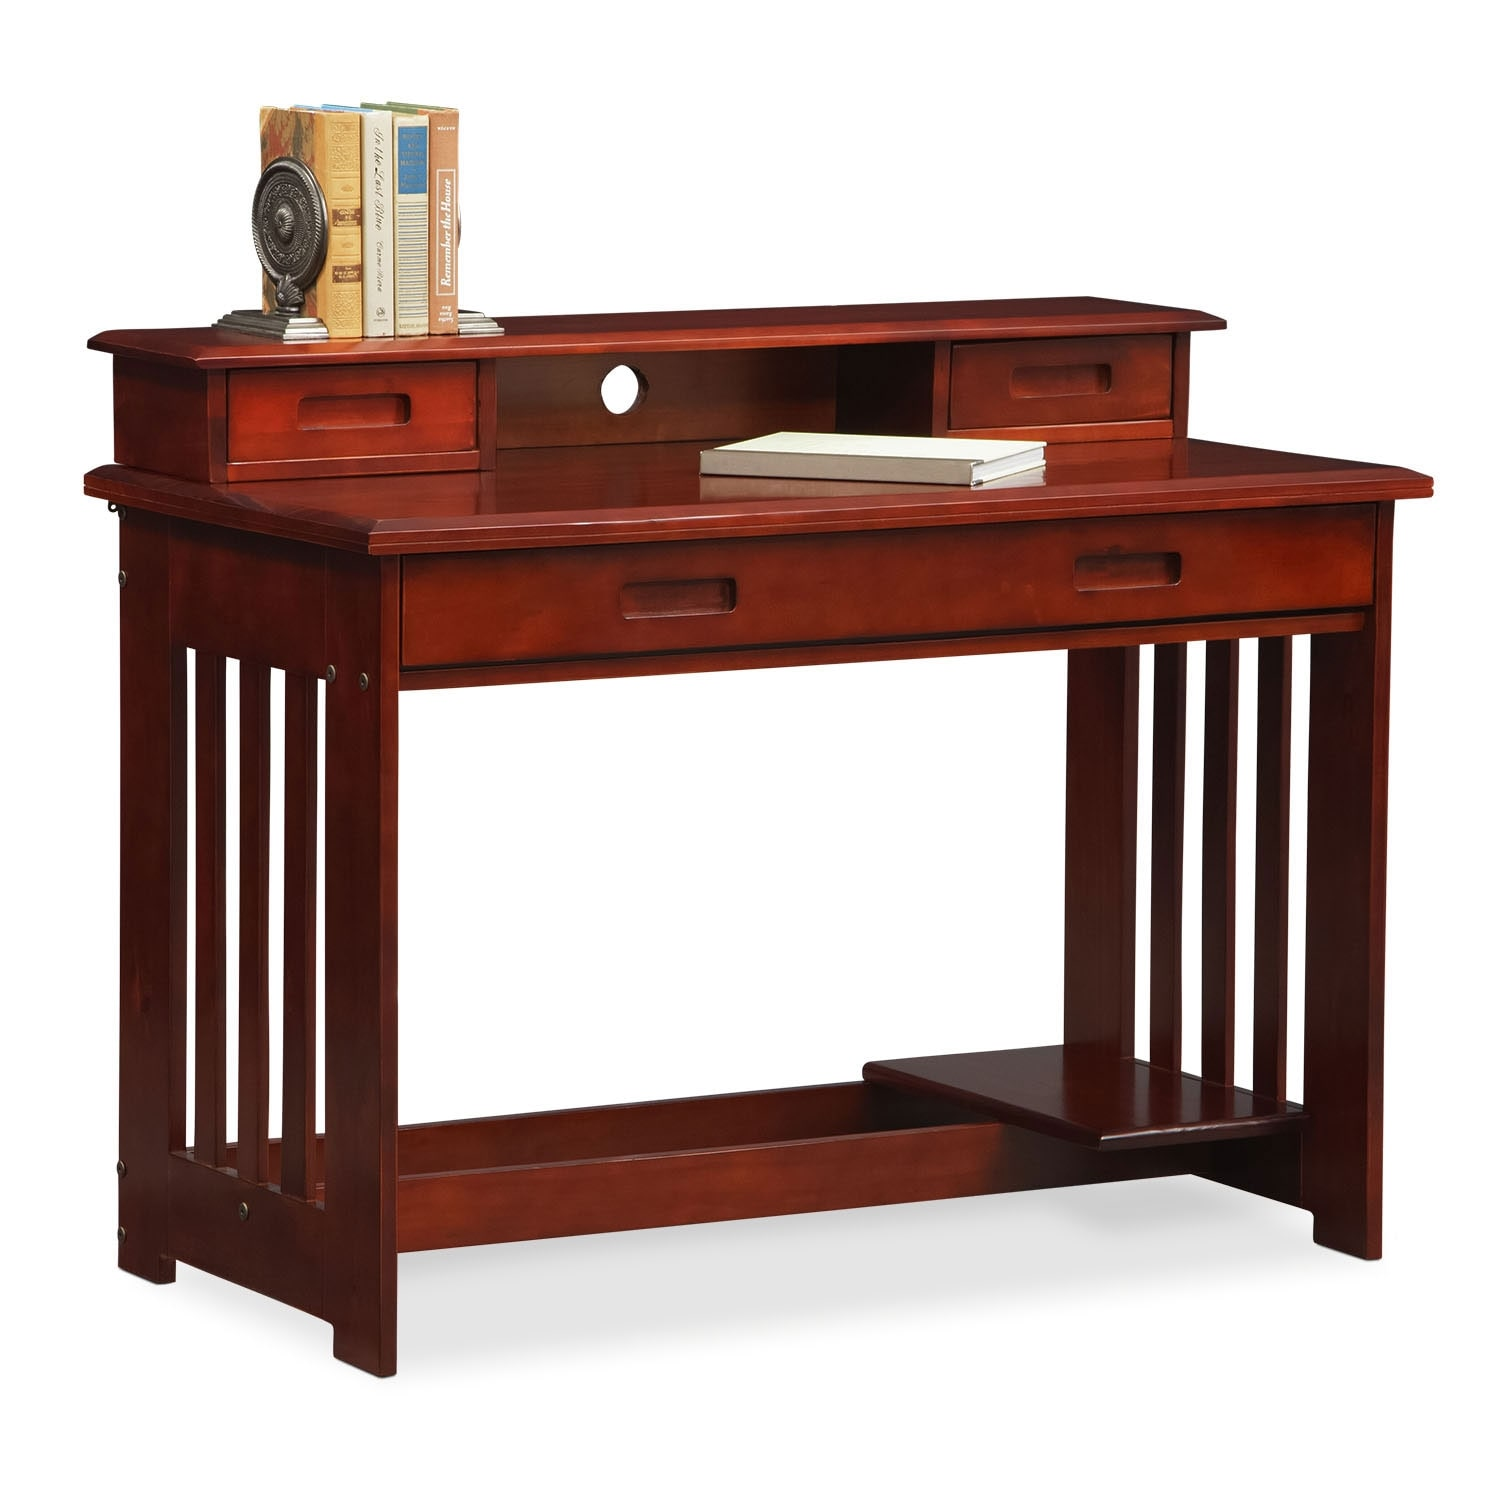 Kids Furniture - Ranger Desk with Hutch